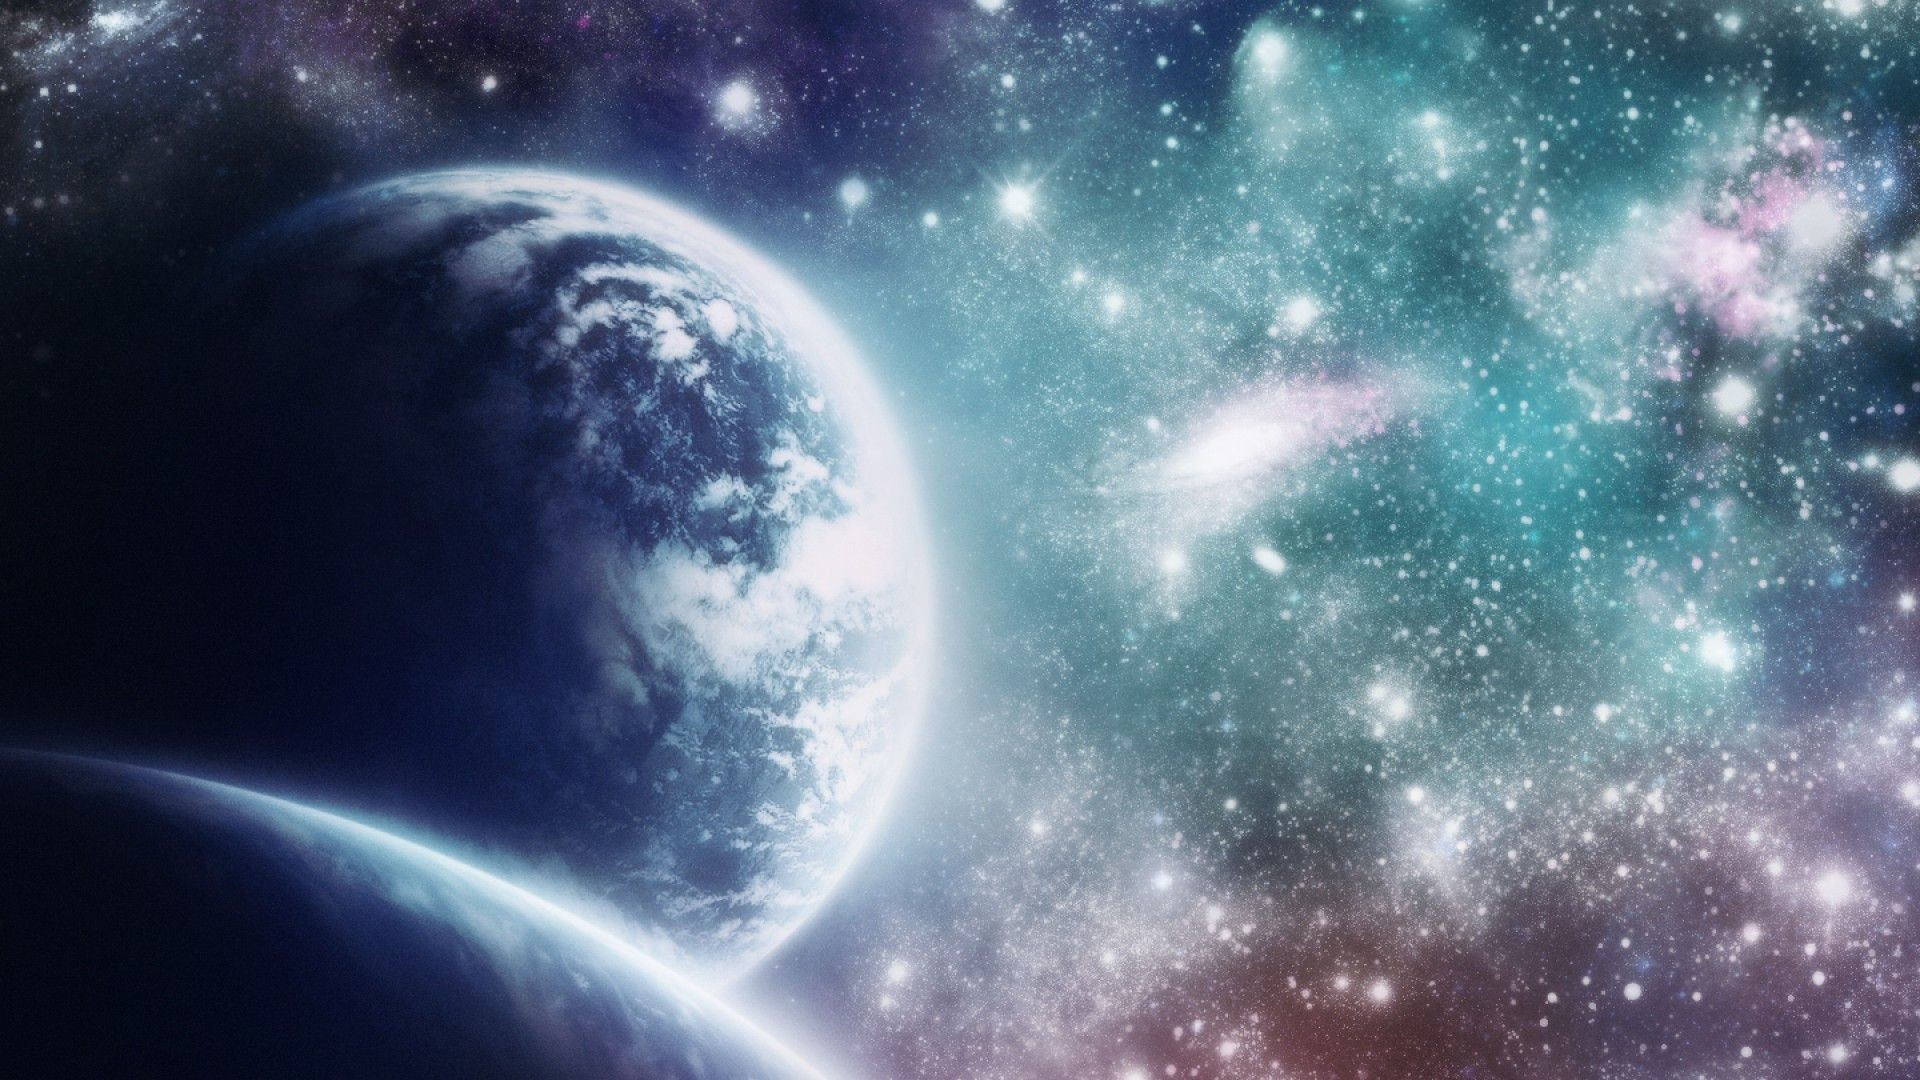 Hd Space Wallpapers 1080p 80 Background Pictures